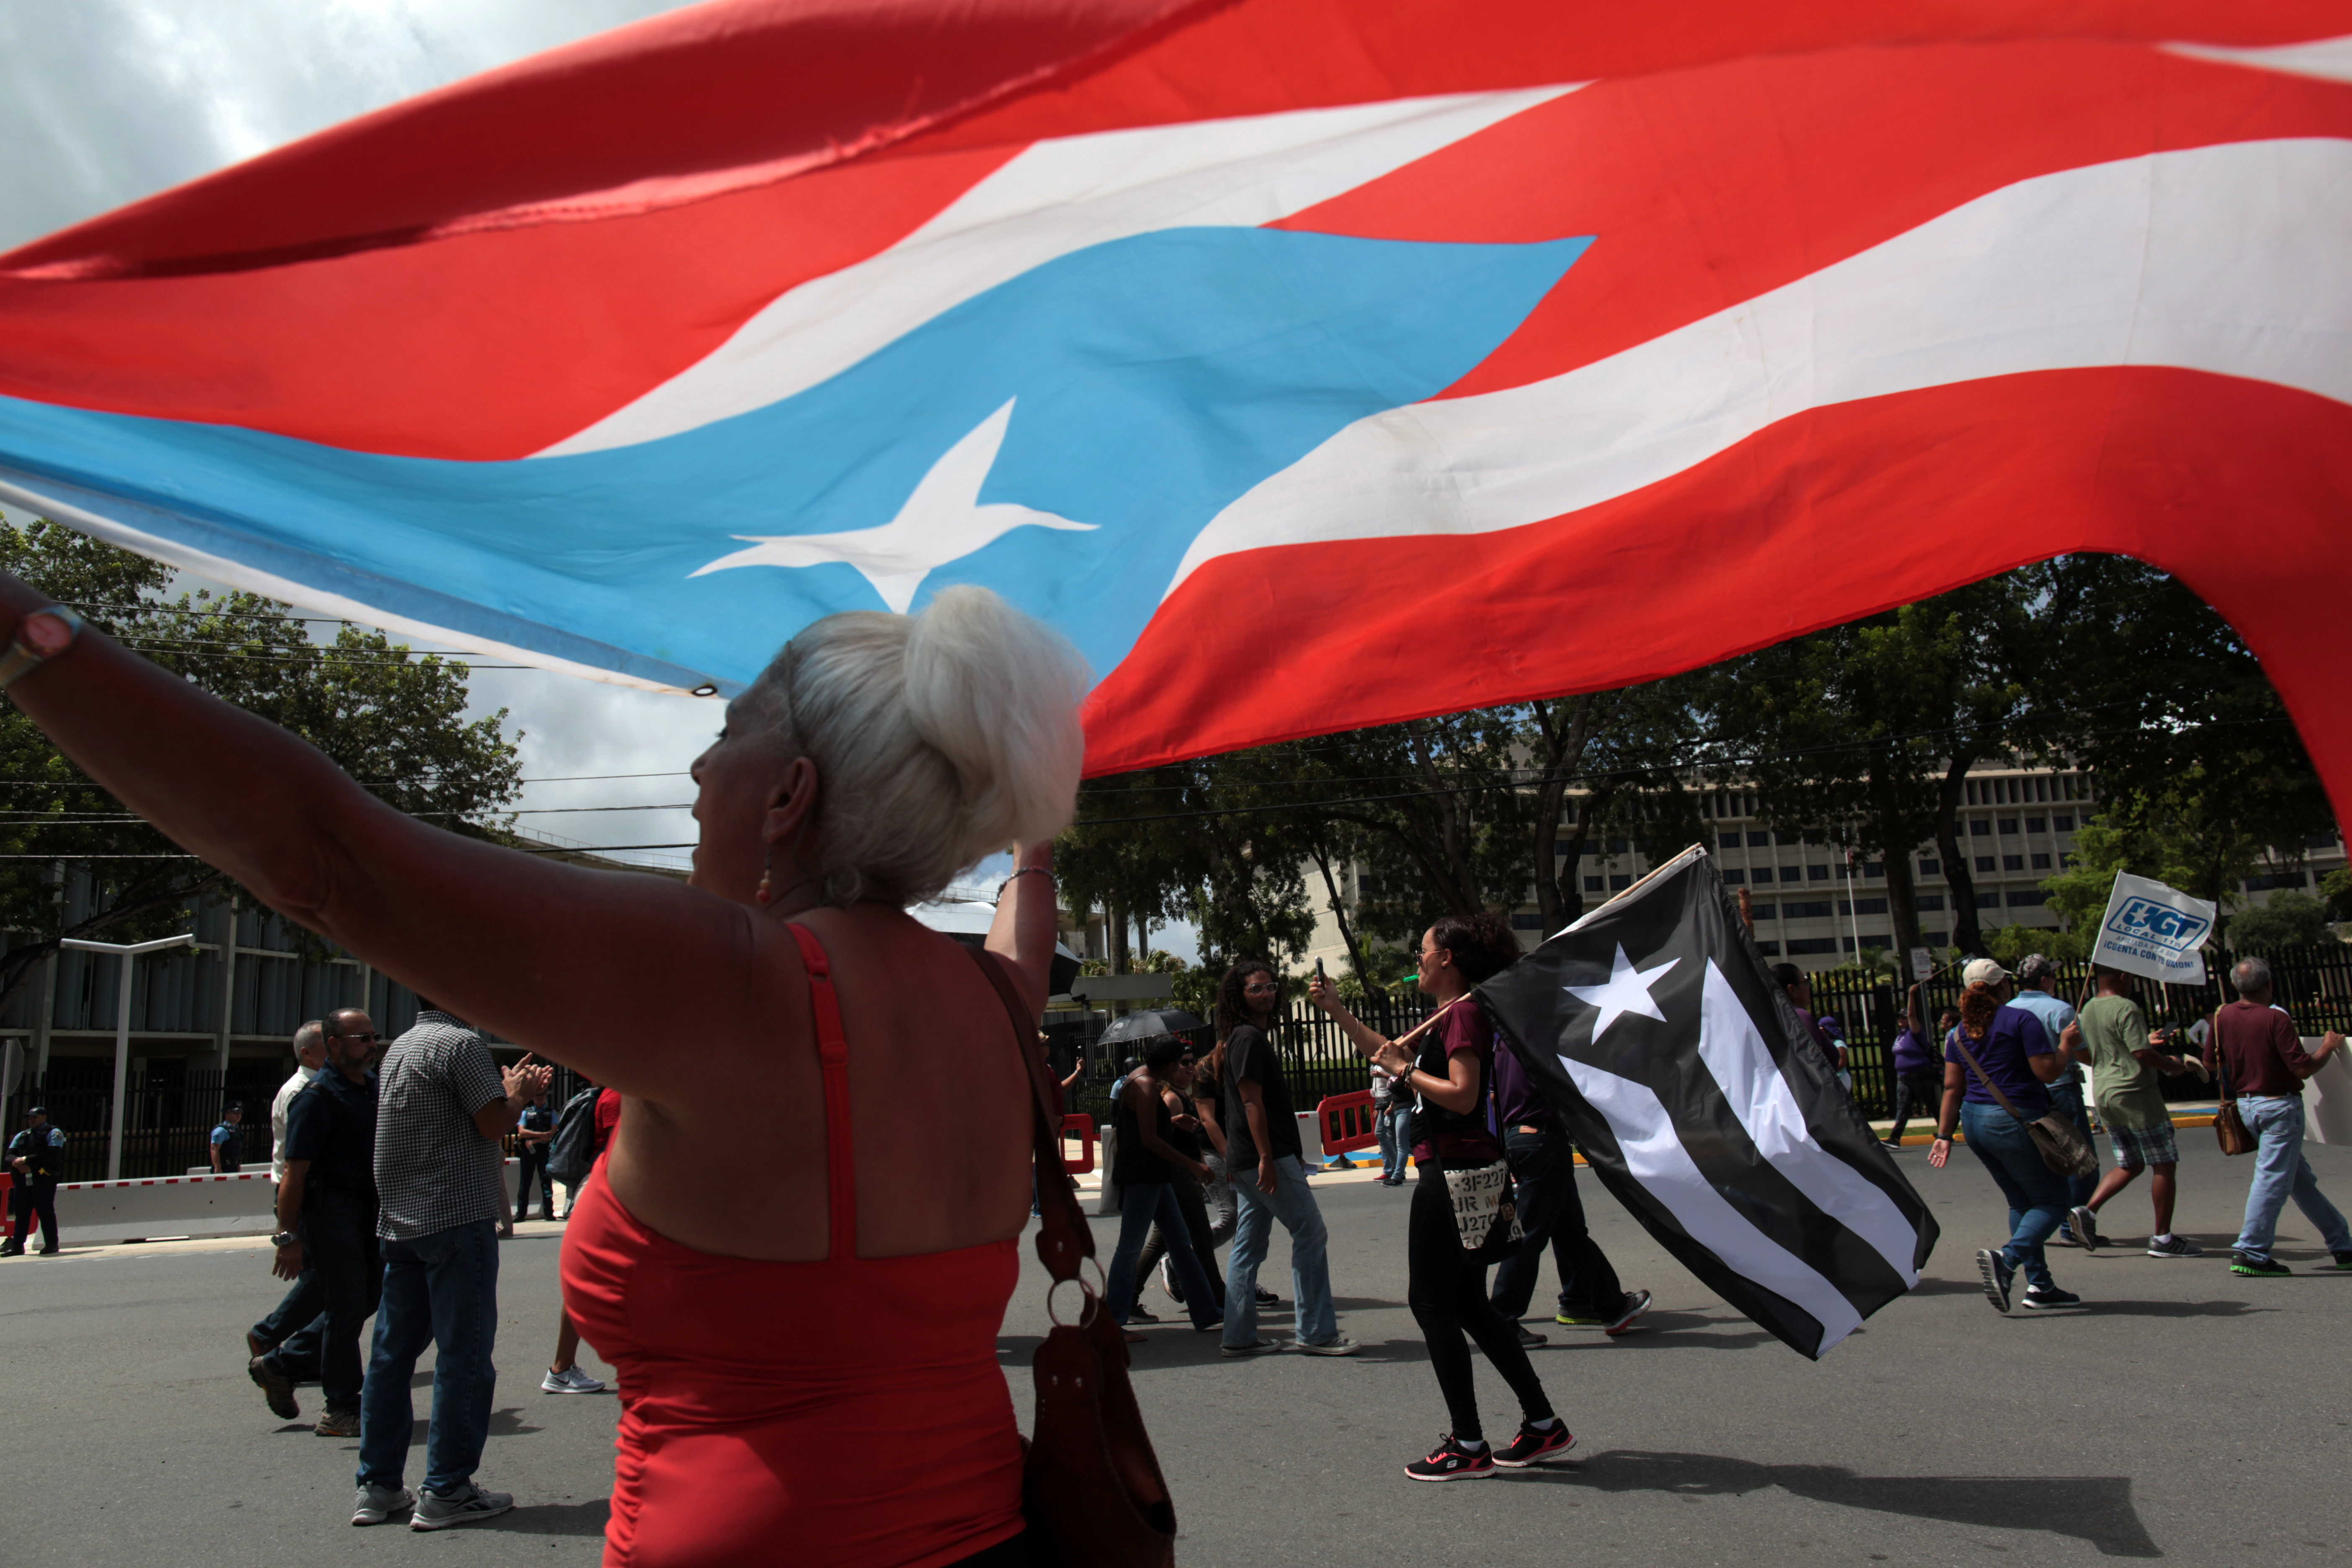 Keeping Our PROMESA: What The U.S. Can Do About Puerto Ricou0027s Fiscal Crisis